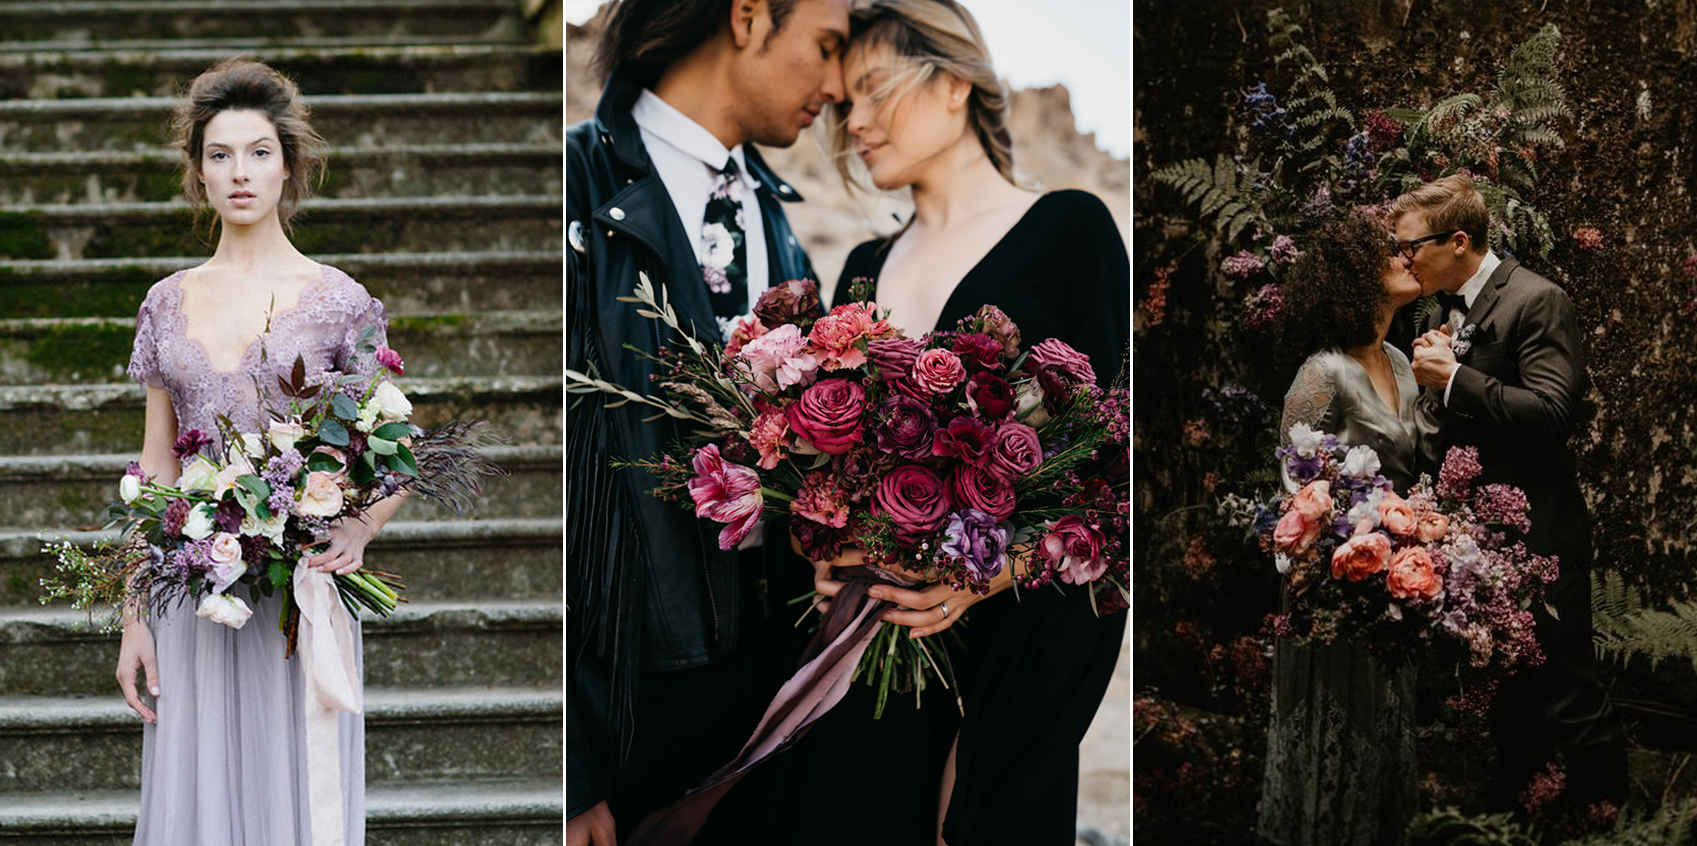 Fotos: M.K. Sadler , The Times We Have y The Greatest Adventure Weddings.